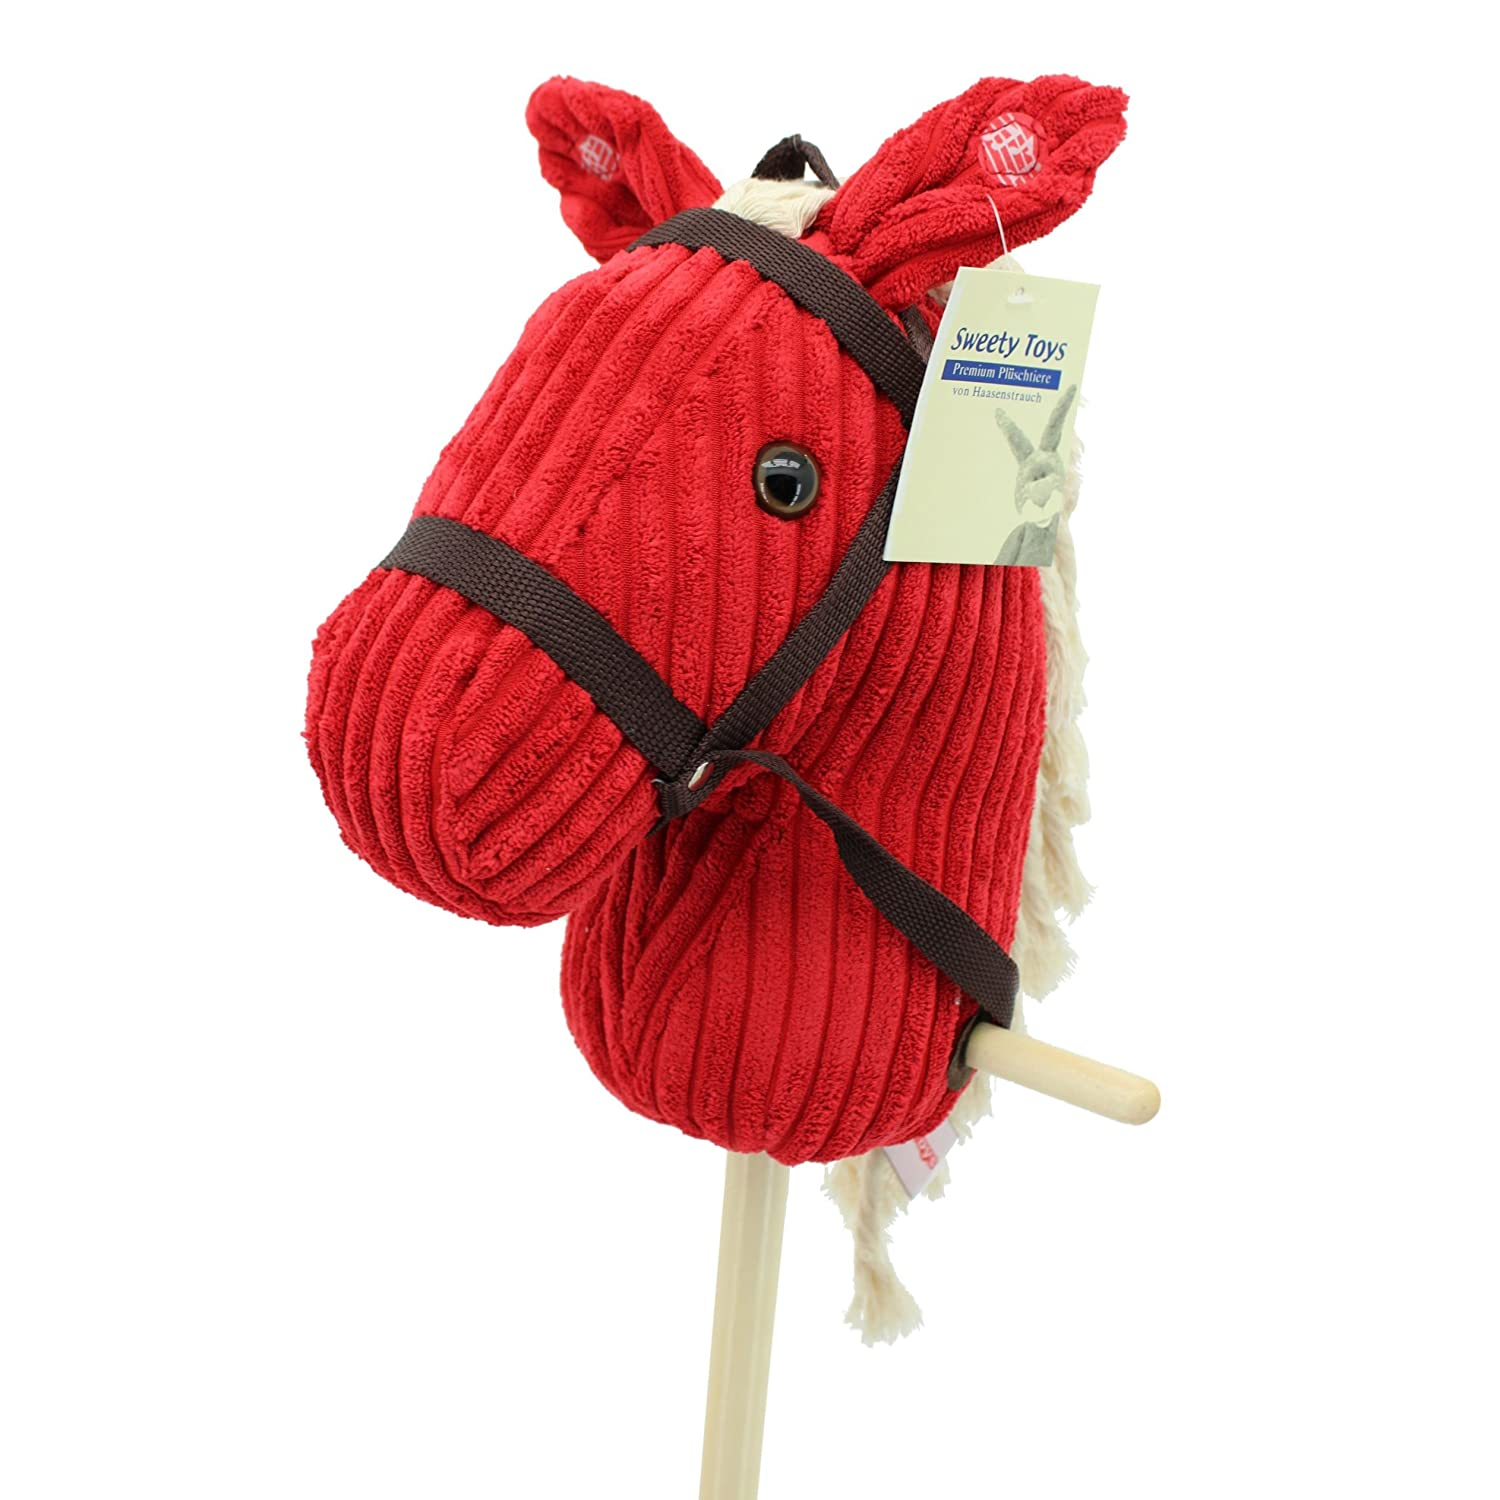 Sweety-Toys 6755  RED Sugar  CORD COTTON coton Tête de cheval à chevaucher Sweety Toys